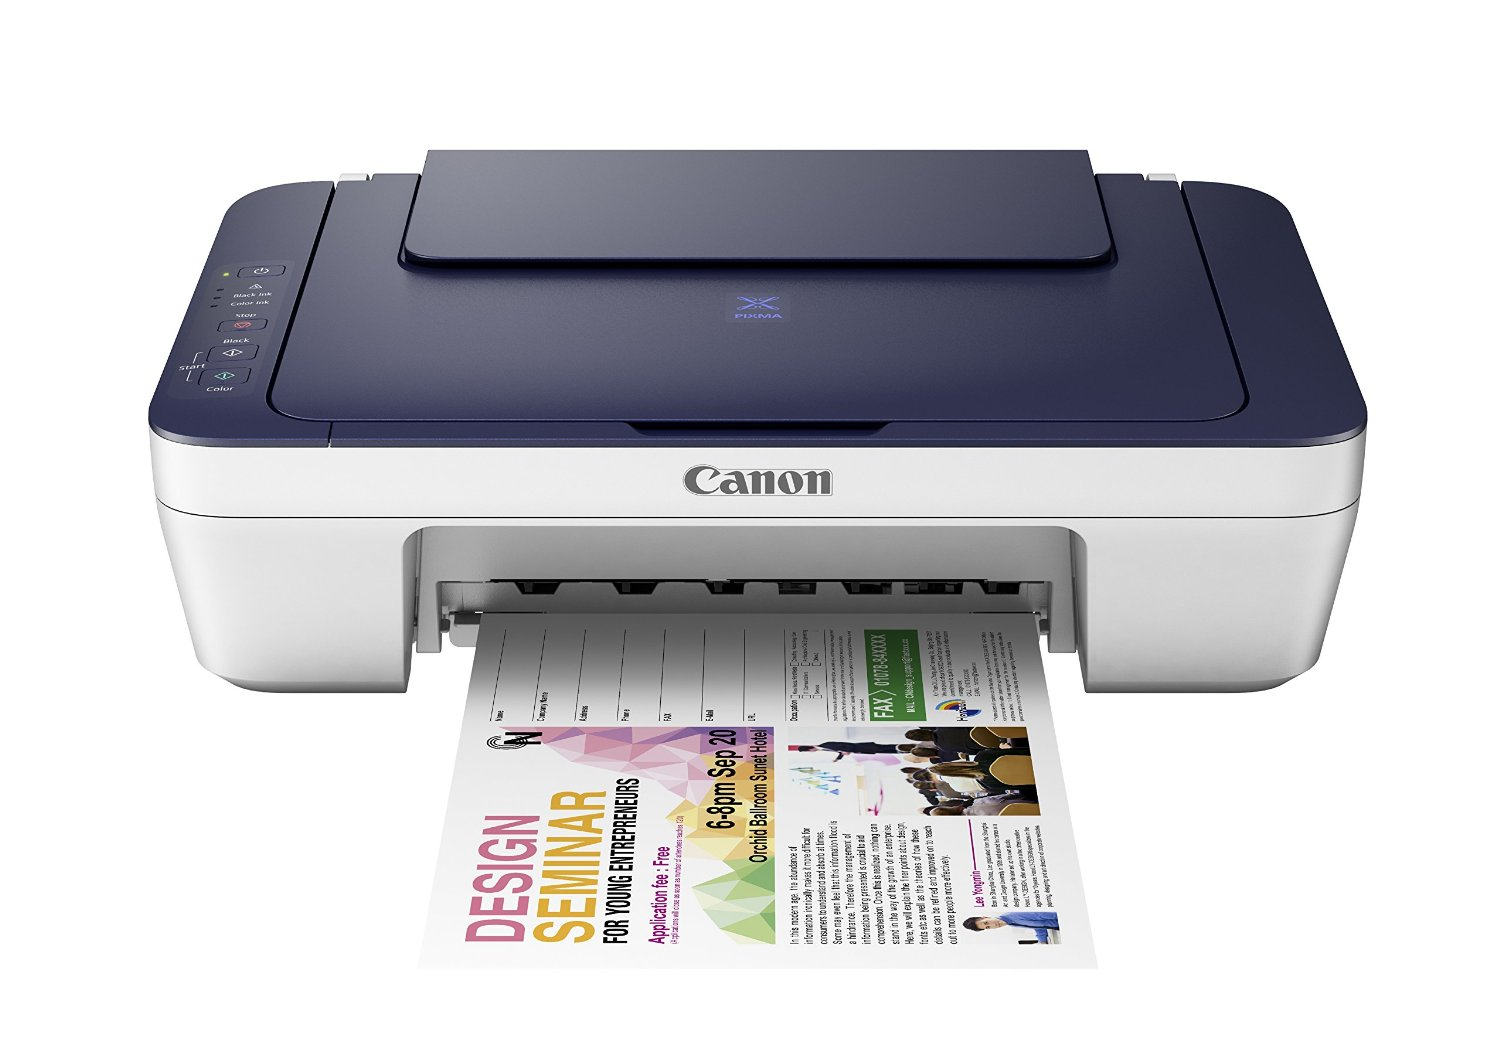 Canon Inkjet Printer: specifications and reviews